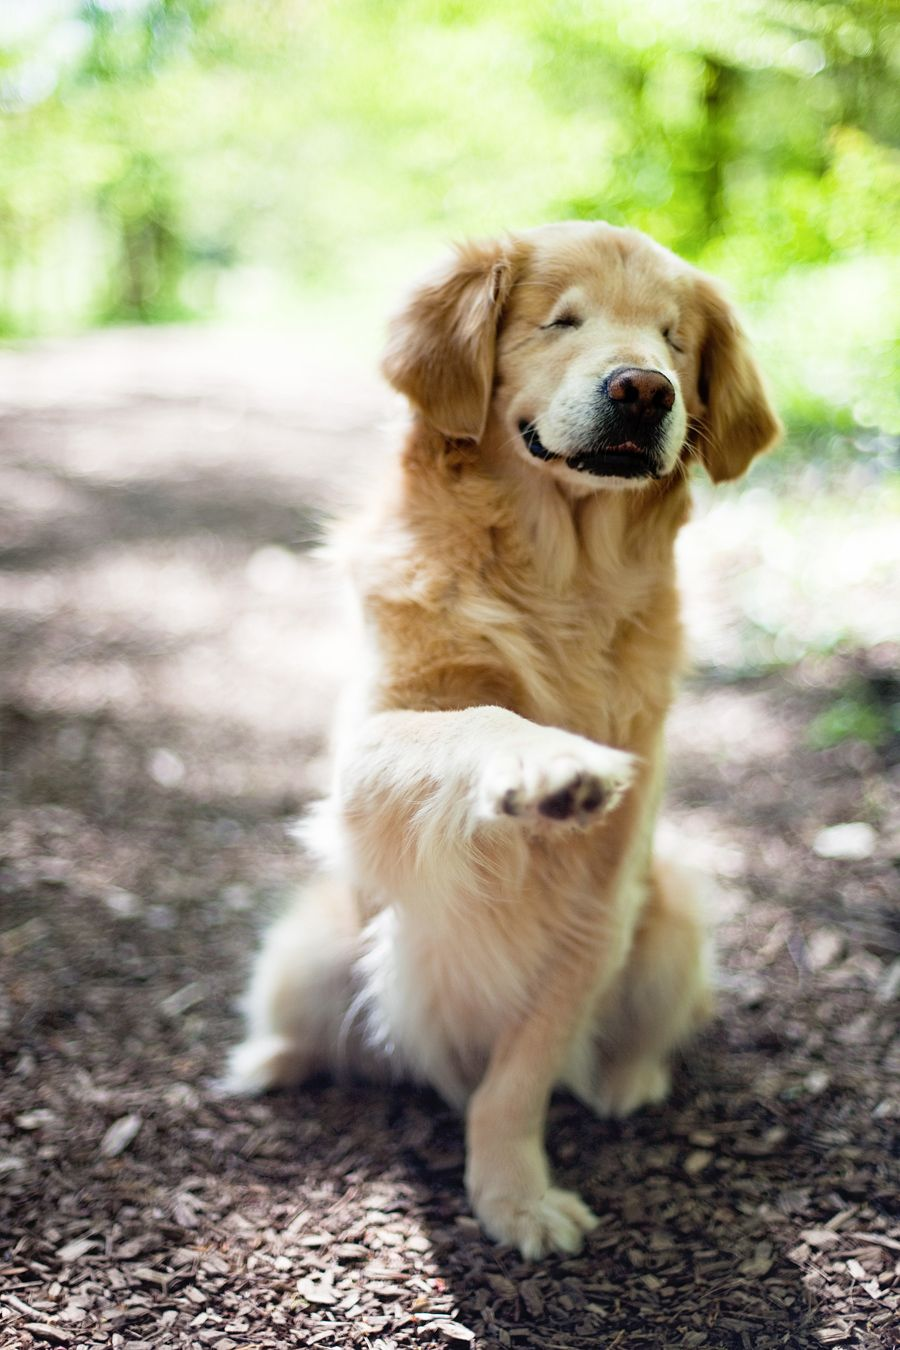 Smiley The Golden Retriever By Happy Tails Pet Photography Cute